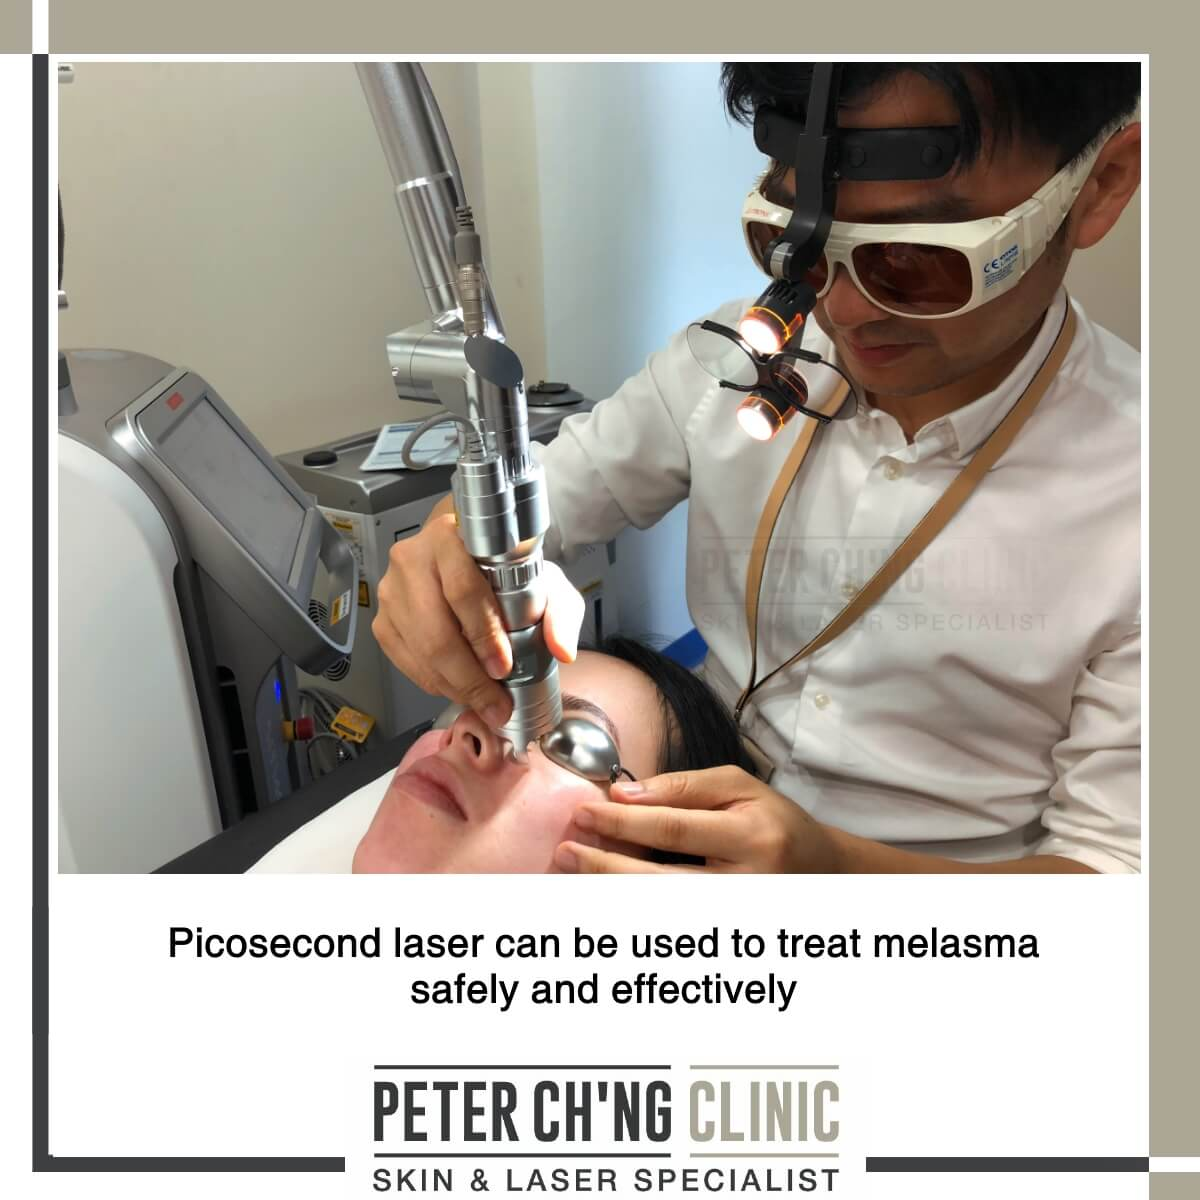 Picosecond laser for melasma